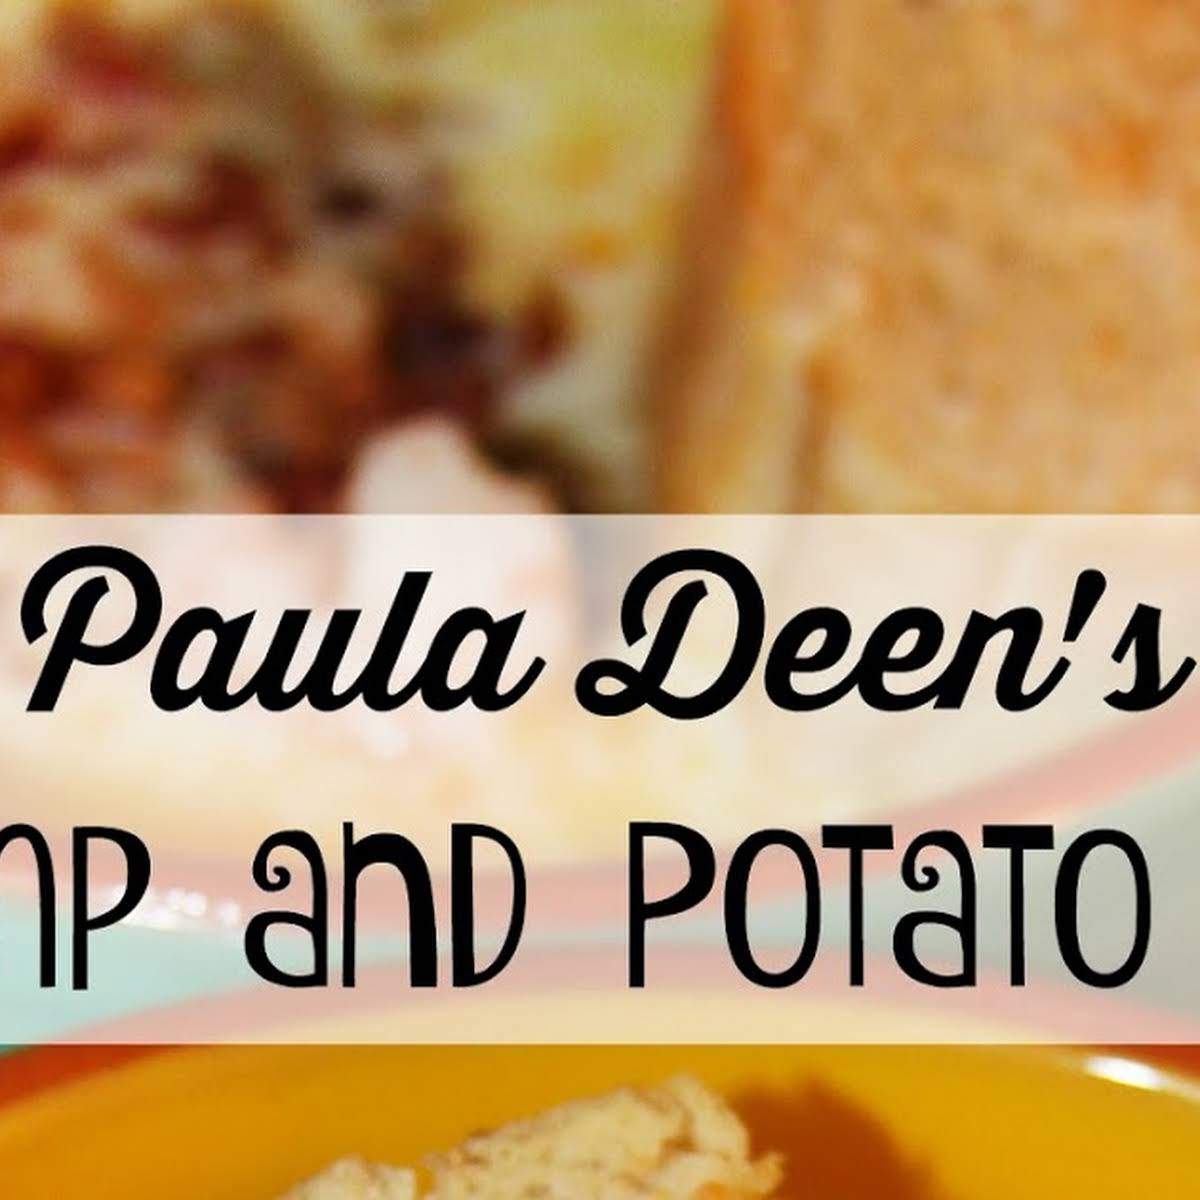 10 Best Paula Deen Potato Soup Recipes